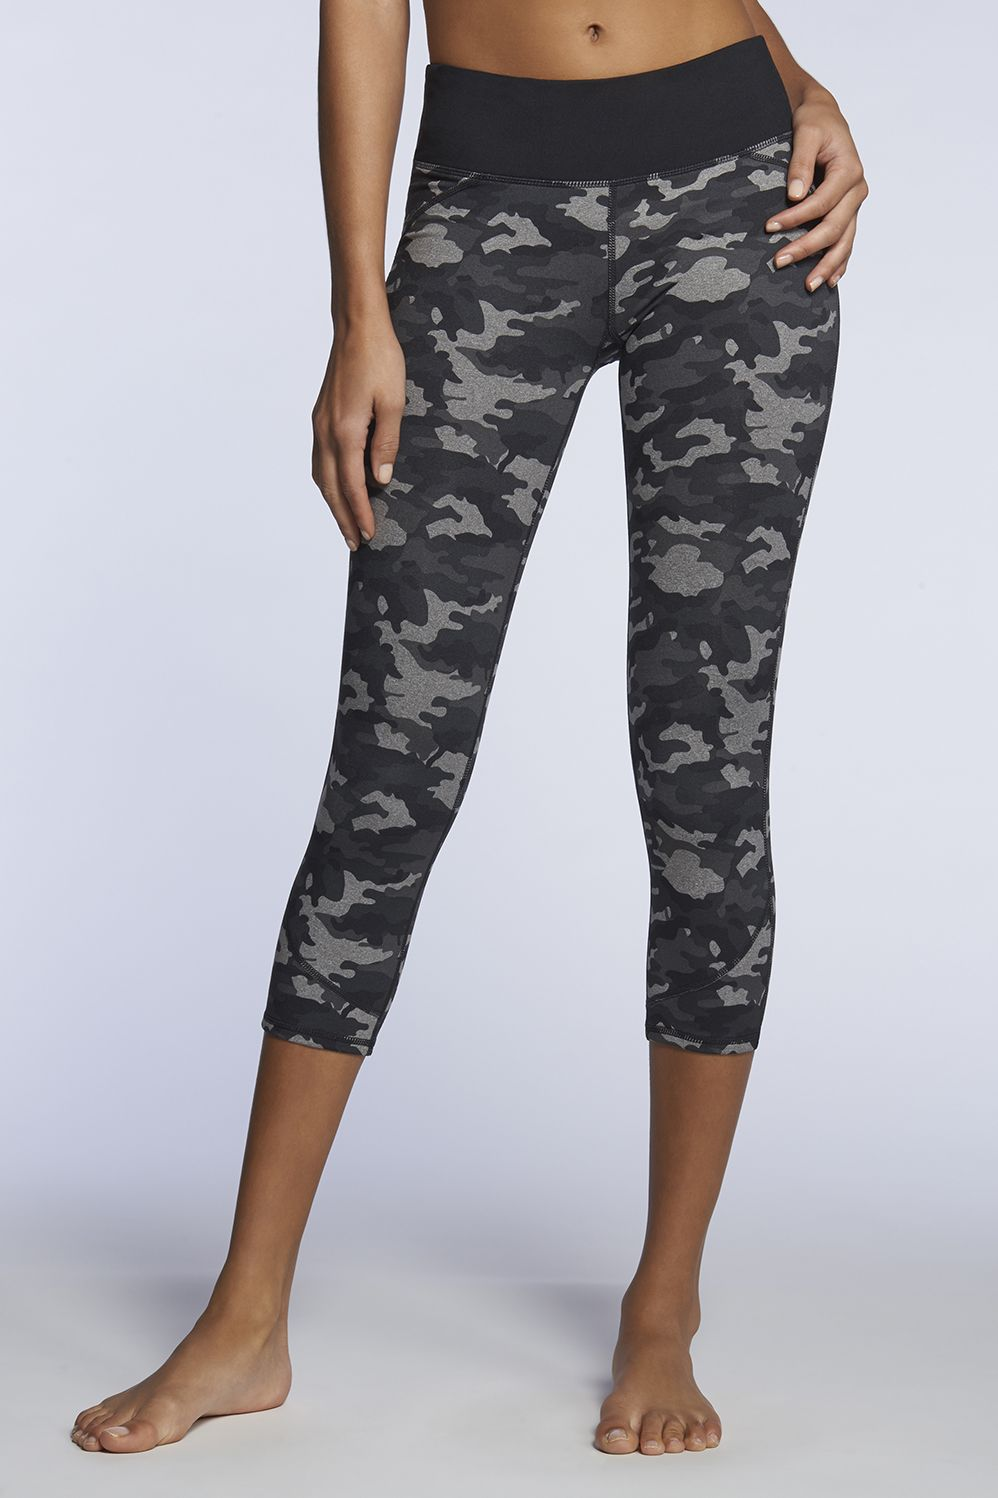 9d7c417cb5afe What do we think about these camo workout pants? I think I would feel like  a badass in them lol